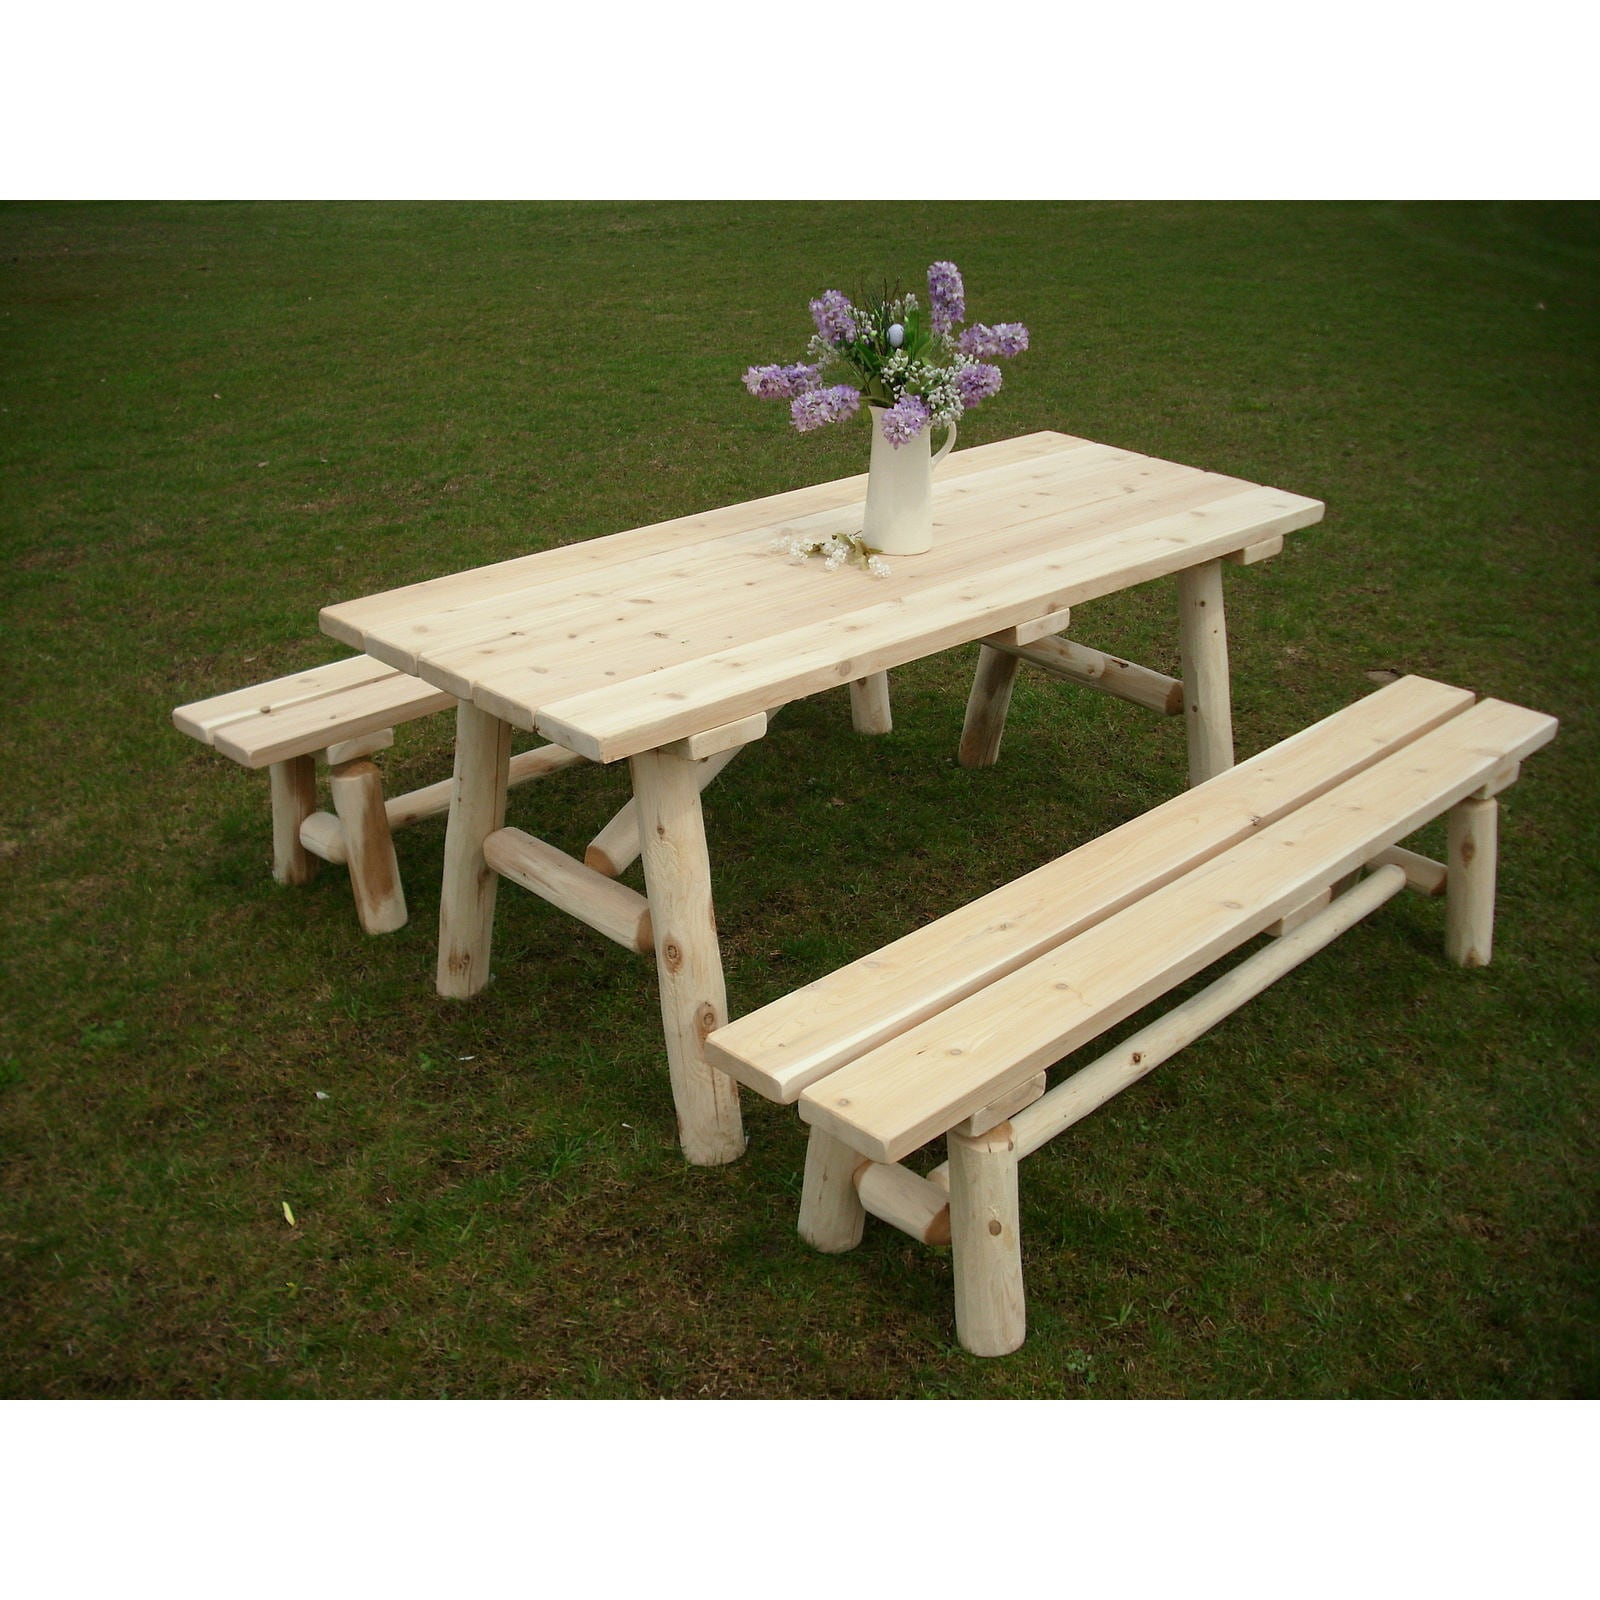 Amazing White Cedar Log 8 Foot Traditional Picnic Table With Detached Benches Customarchery Wood Chair Design Ideas Customarcherynet